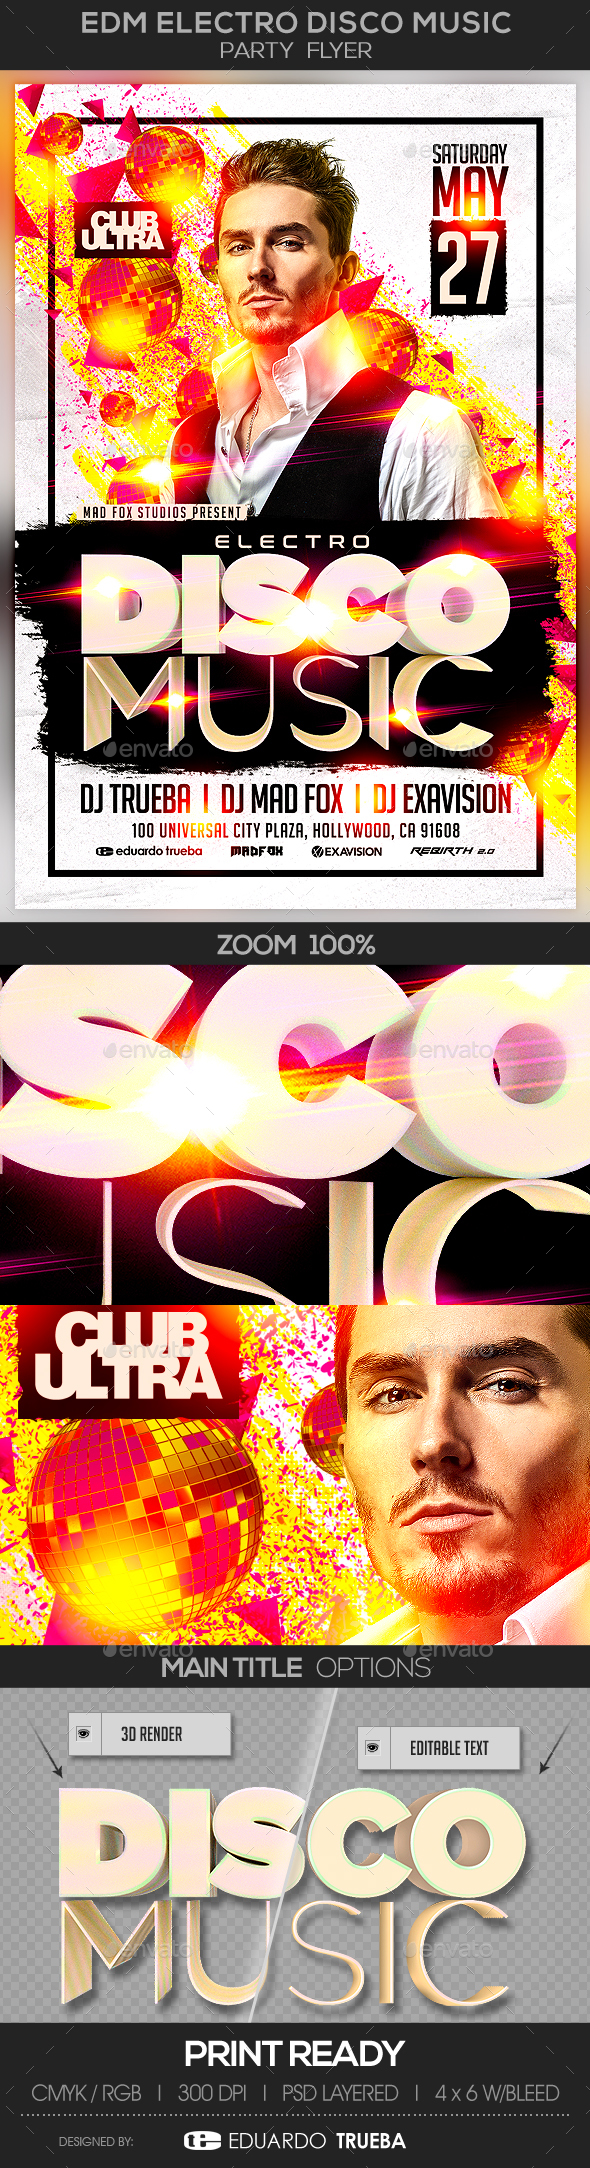 EDM Electro Disco Music Party Flyer - Clubs & Parties Events